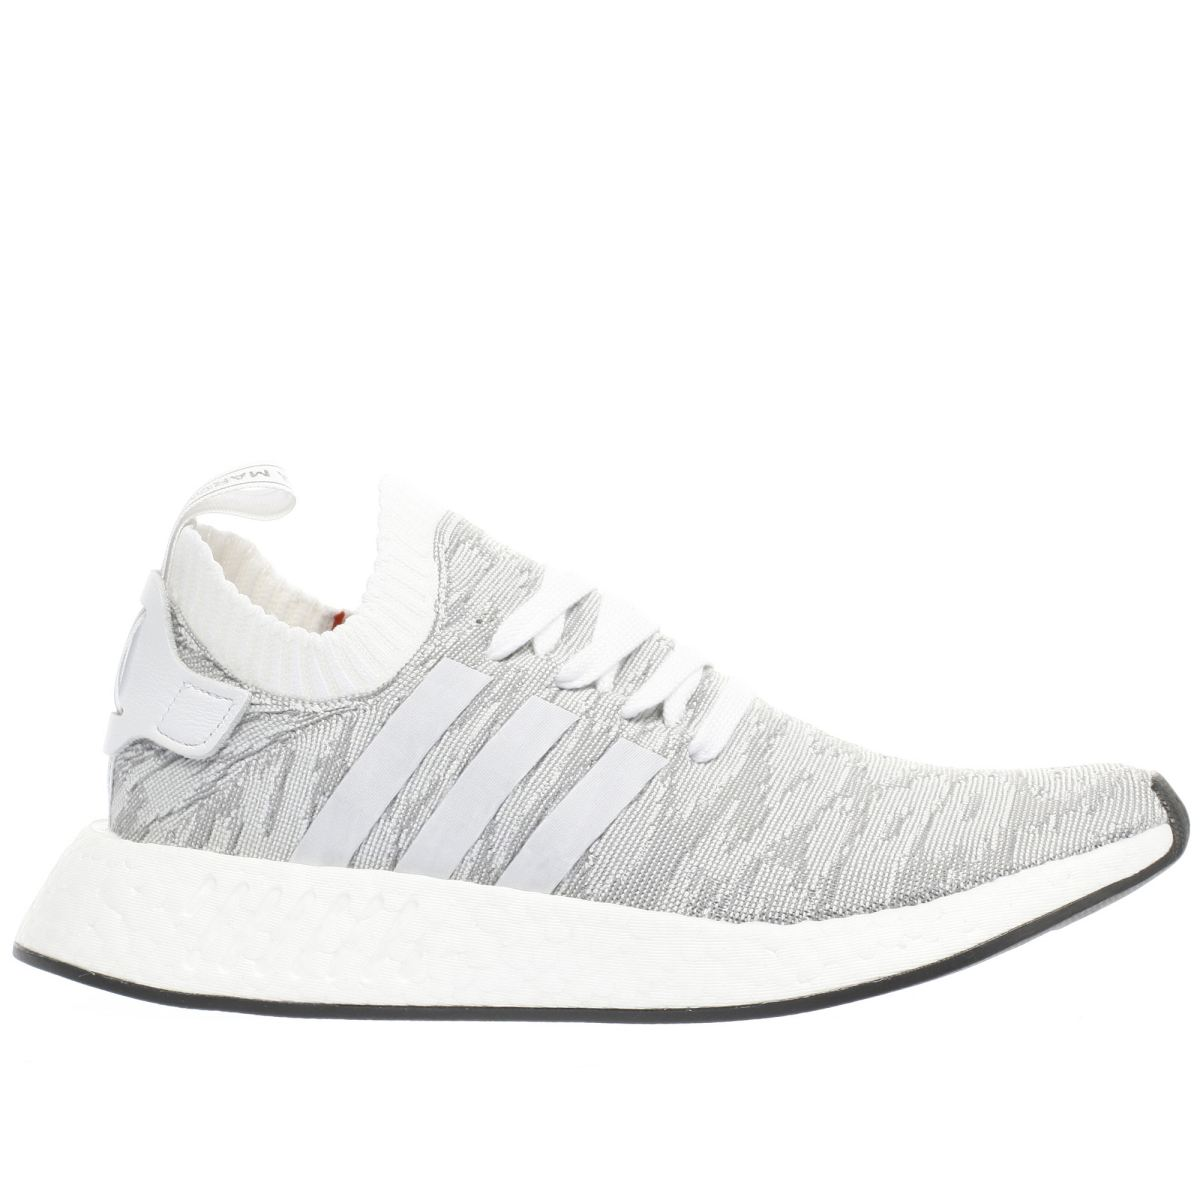 adidas white & grey nmd_r2 primeknit trainers